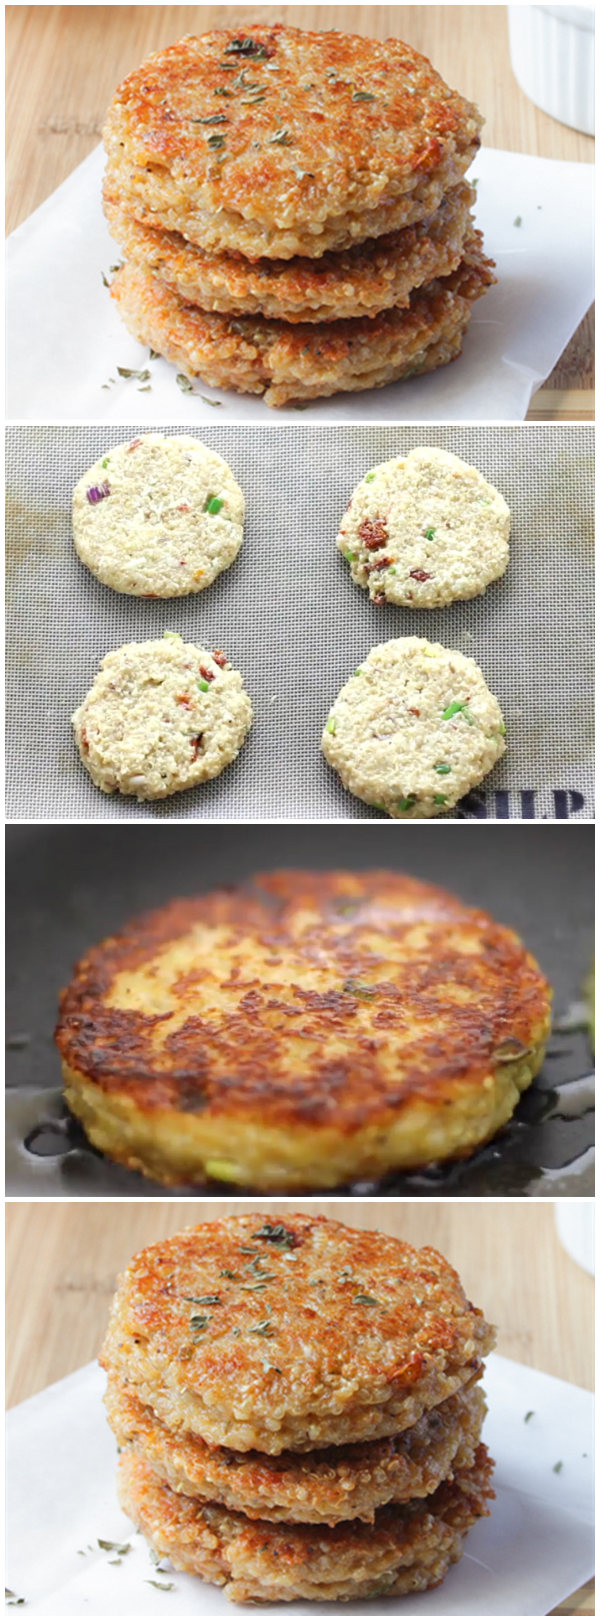 Quinoa Veggie Burgers (Sun-dried Tomato and Mozzarella)